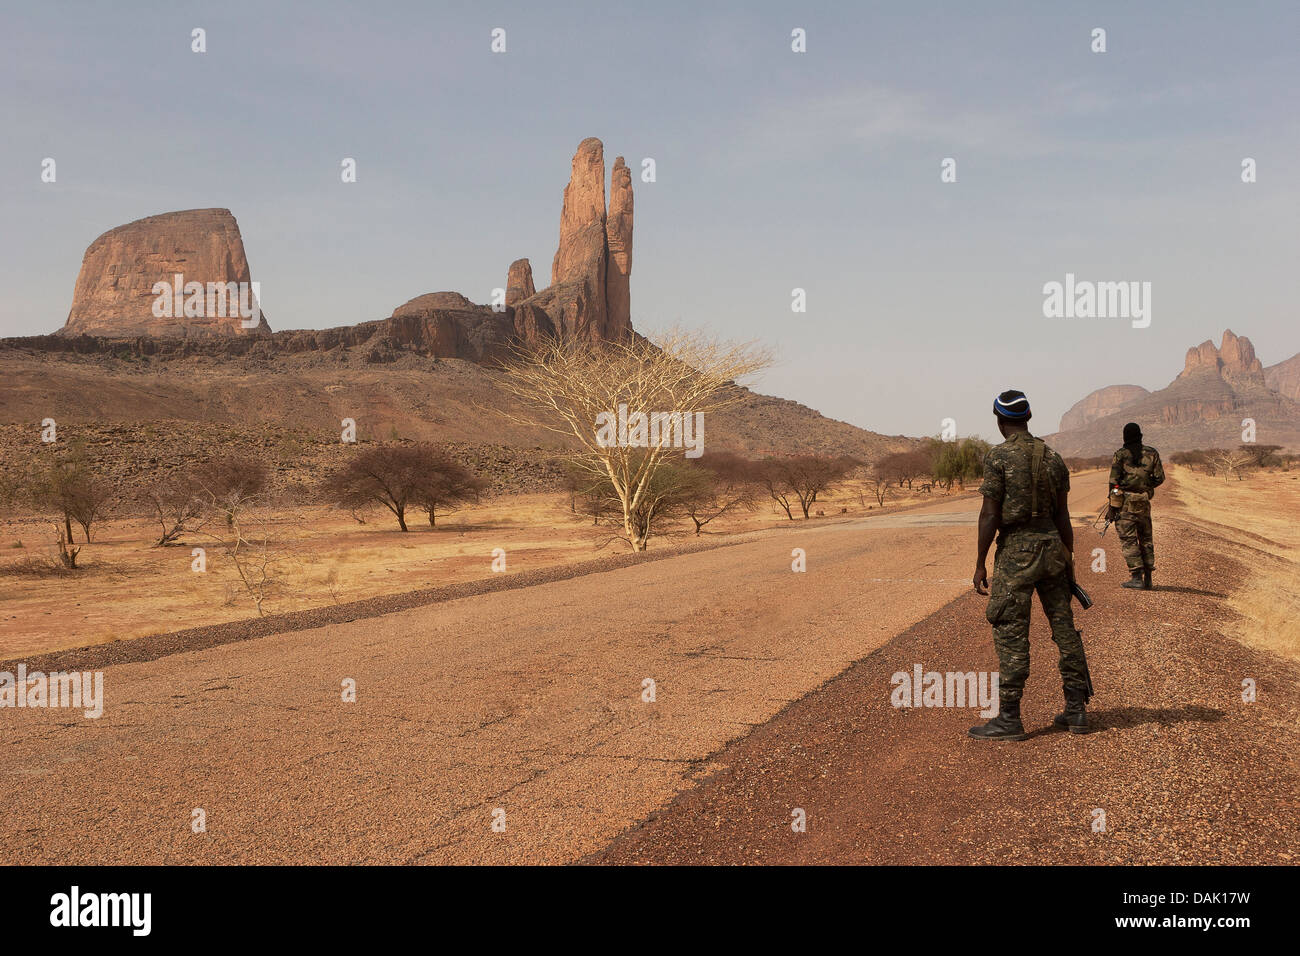 Armed soldiers from Malian army on patrol looking out for members of  al-Qaeda near 'The Hand of Fatima' - Stock Image